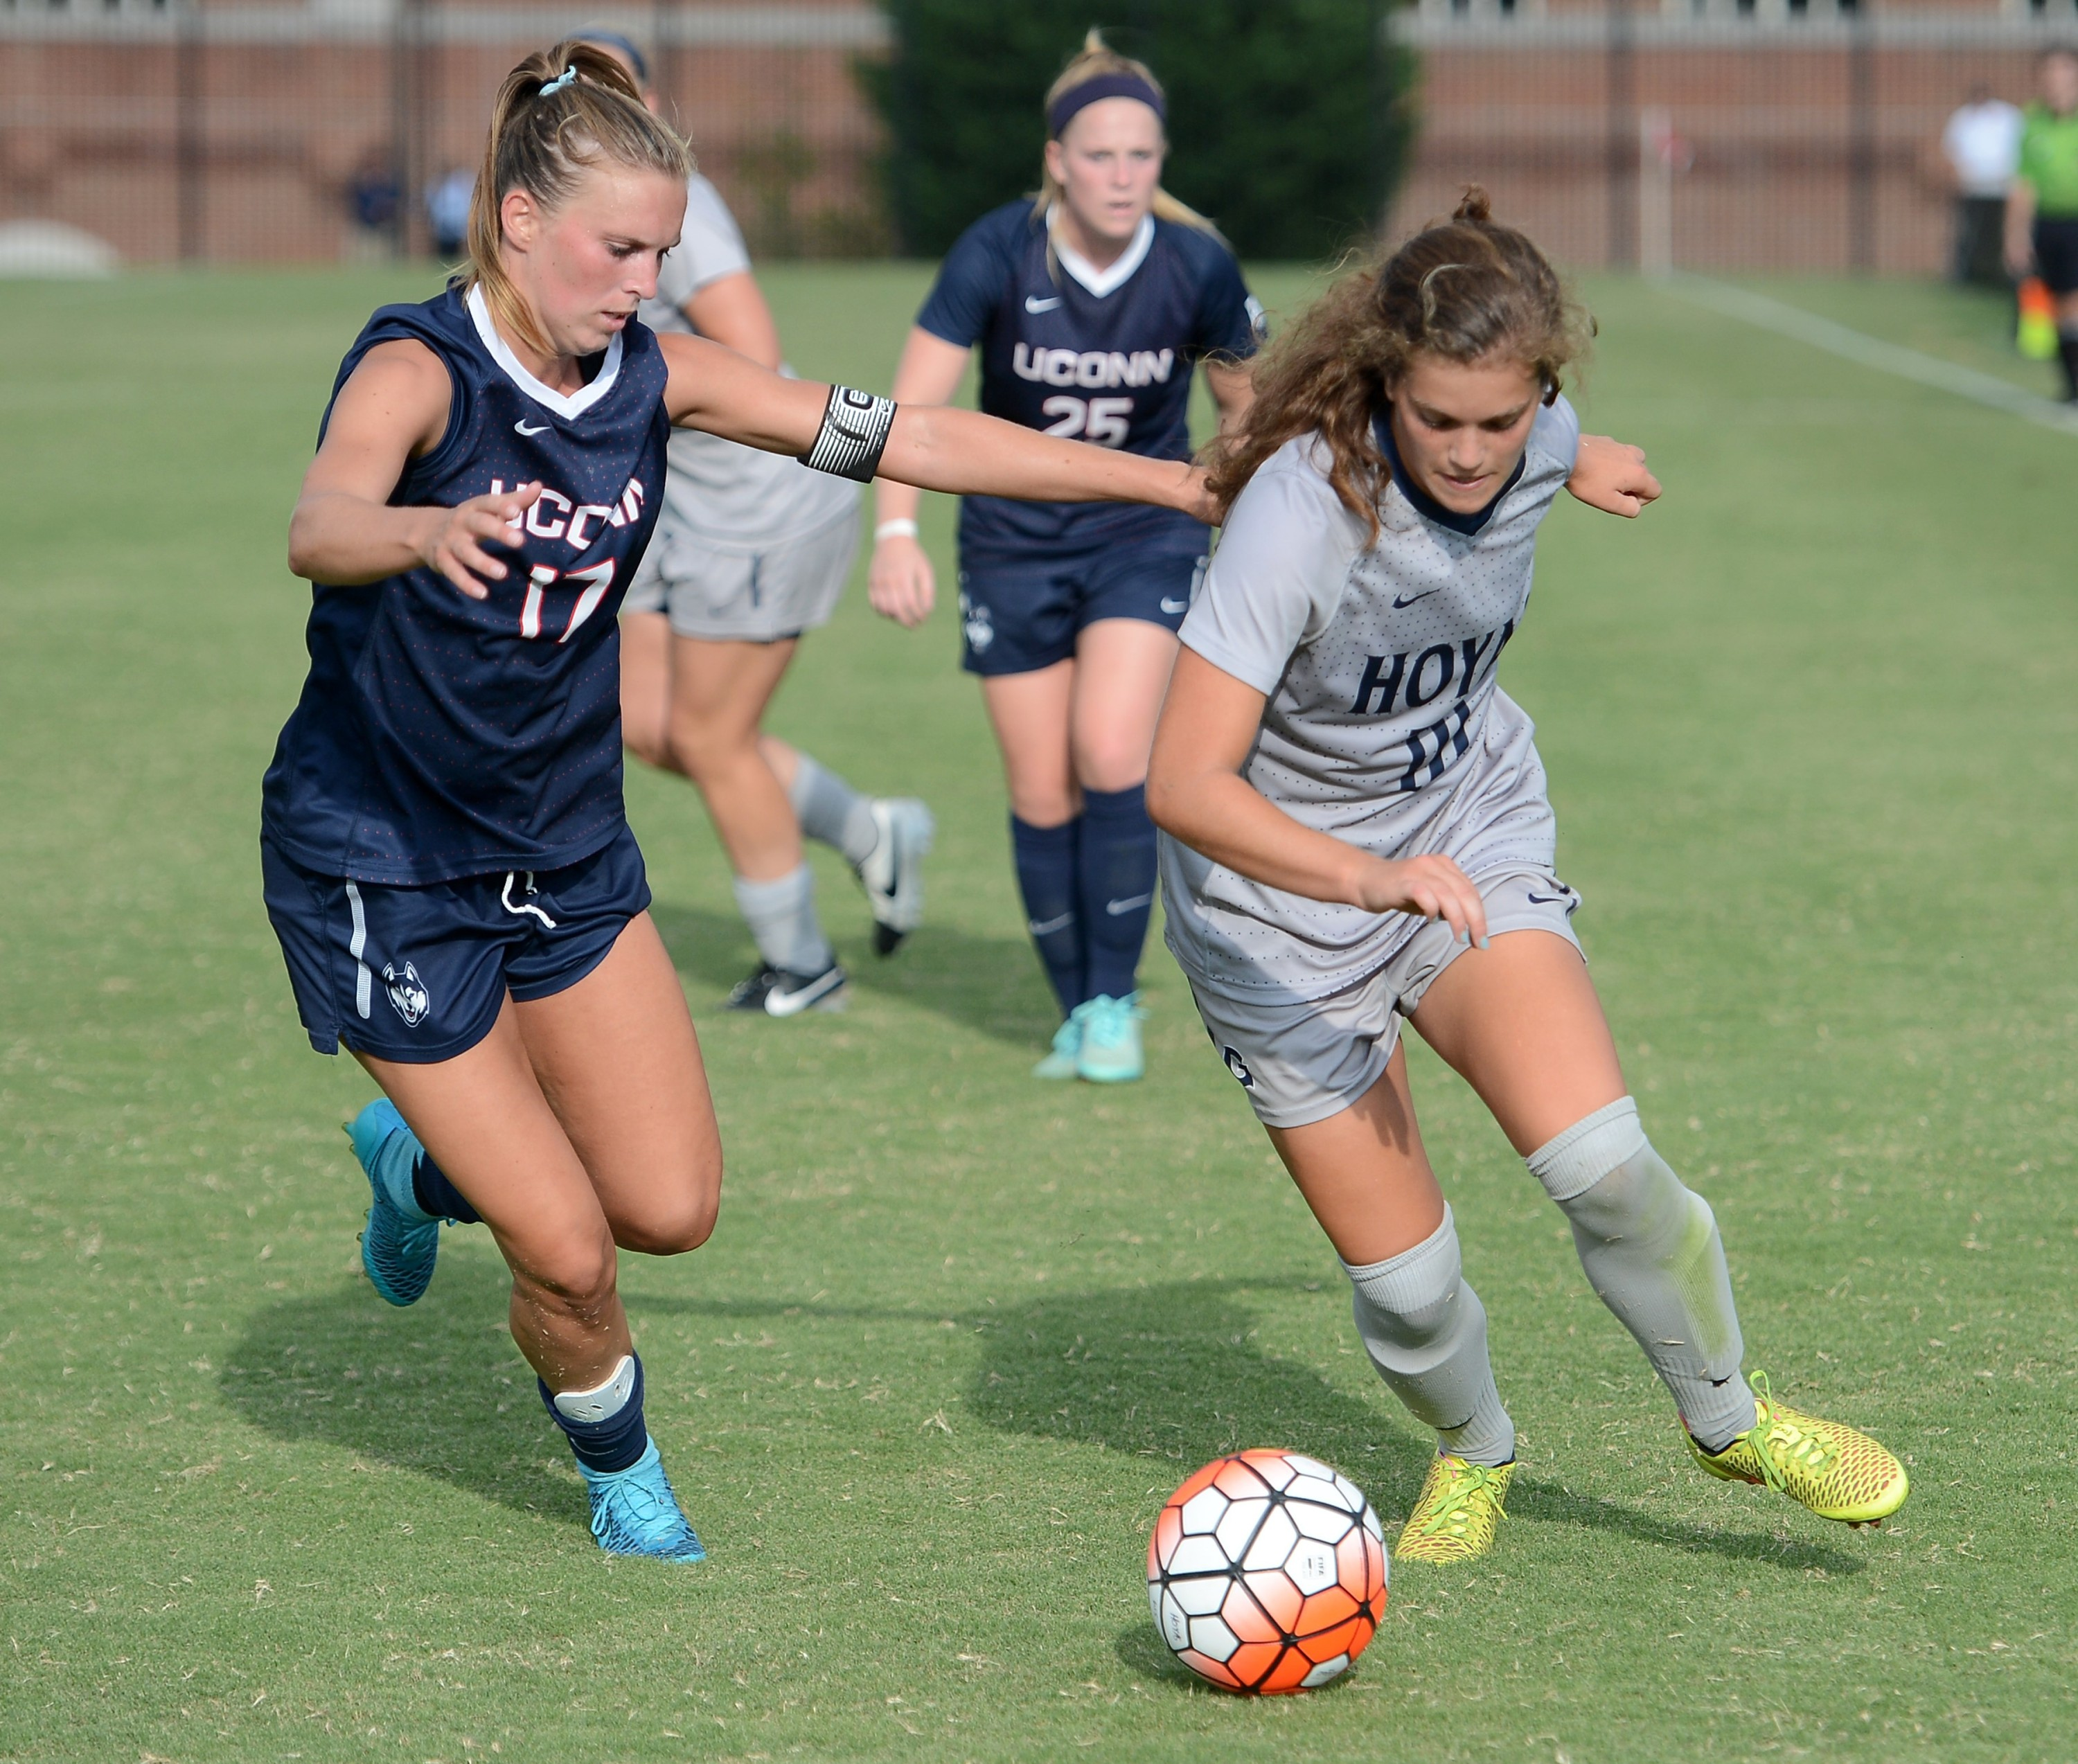 The Georgetown University women's soccer team took an early lead and had several chances to break a tie in the second overtime, but could not score the go-ahead goal as the Hoyas played to a 1-1 double overtime tie at DePaul on Sunday afternoon.